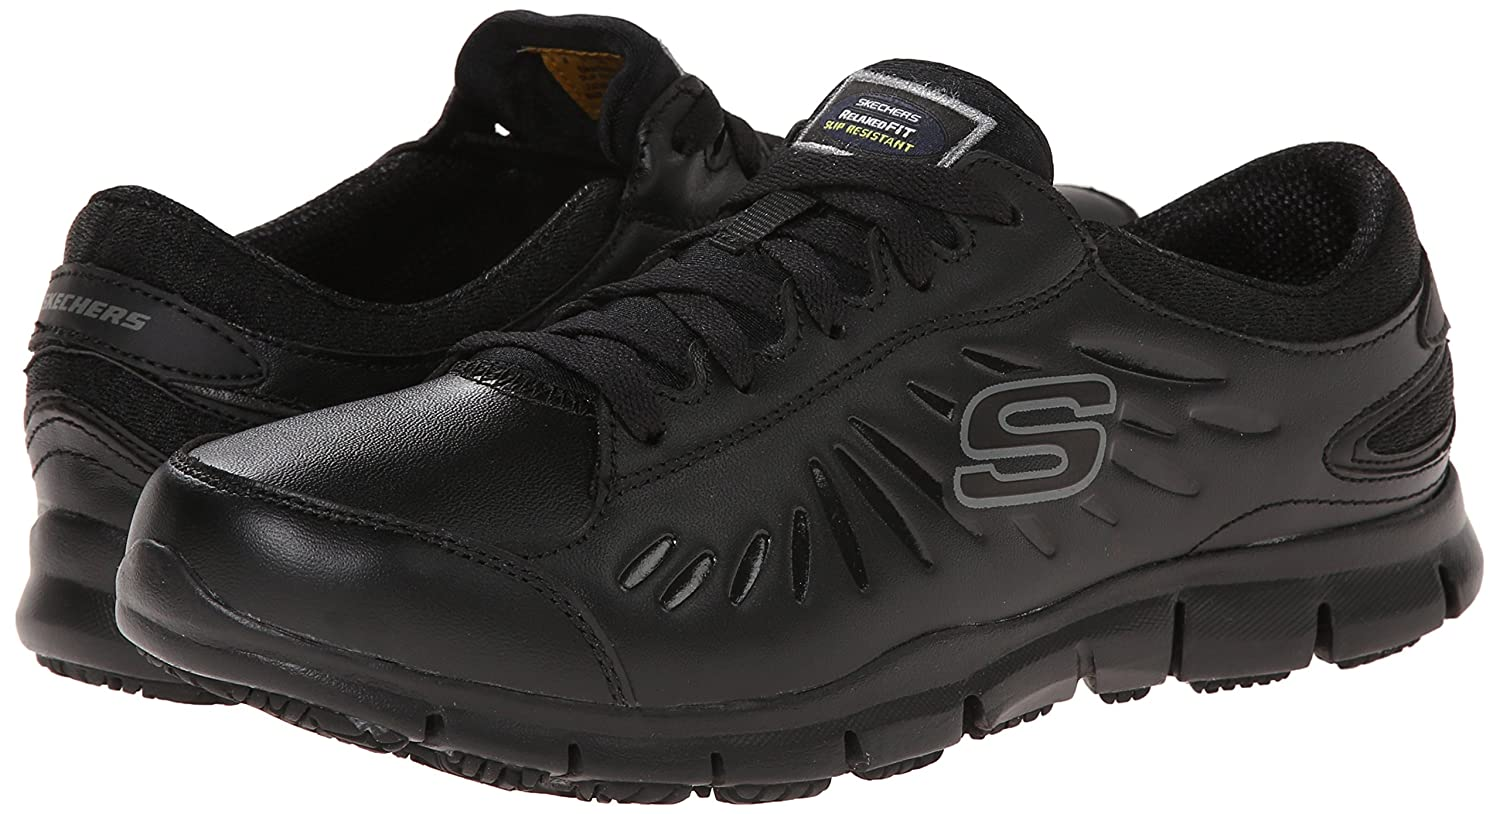 Chaussures Femmes Skechers Travail 7 Q9fifZOr74